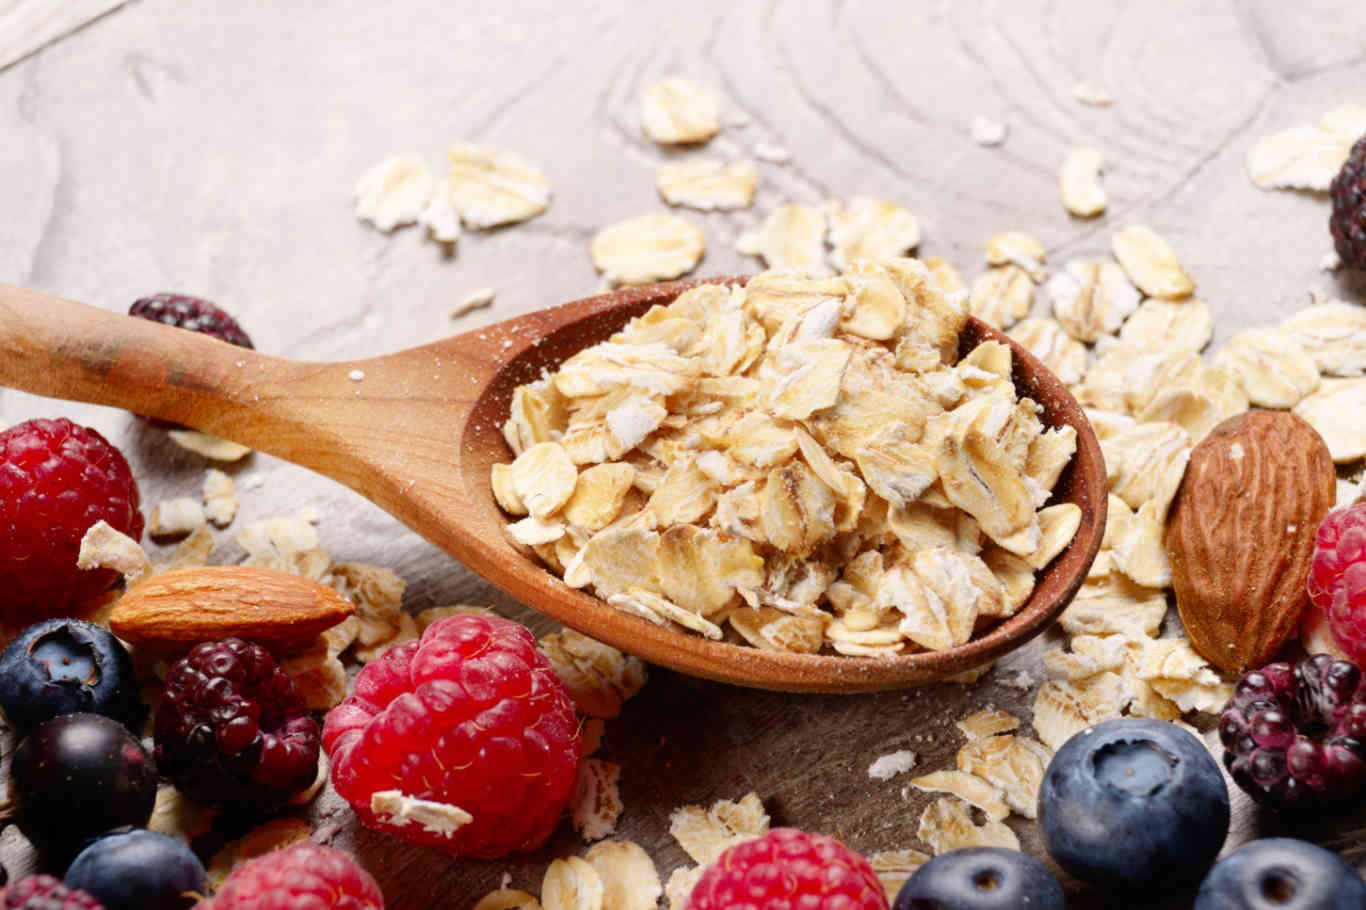 Oatmeal oats with berries and nuts on wooden table